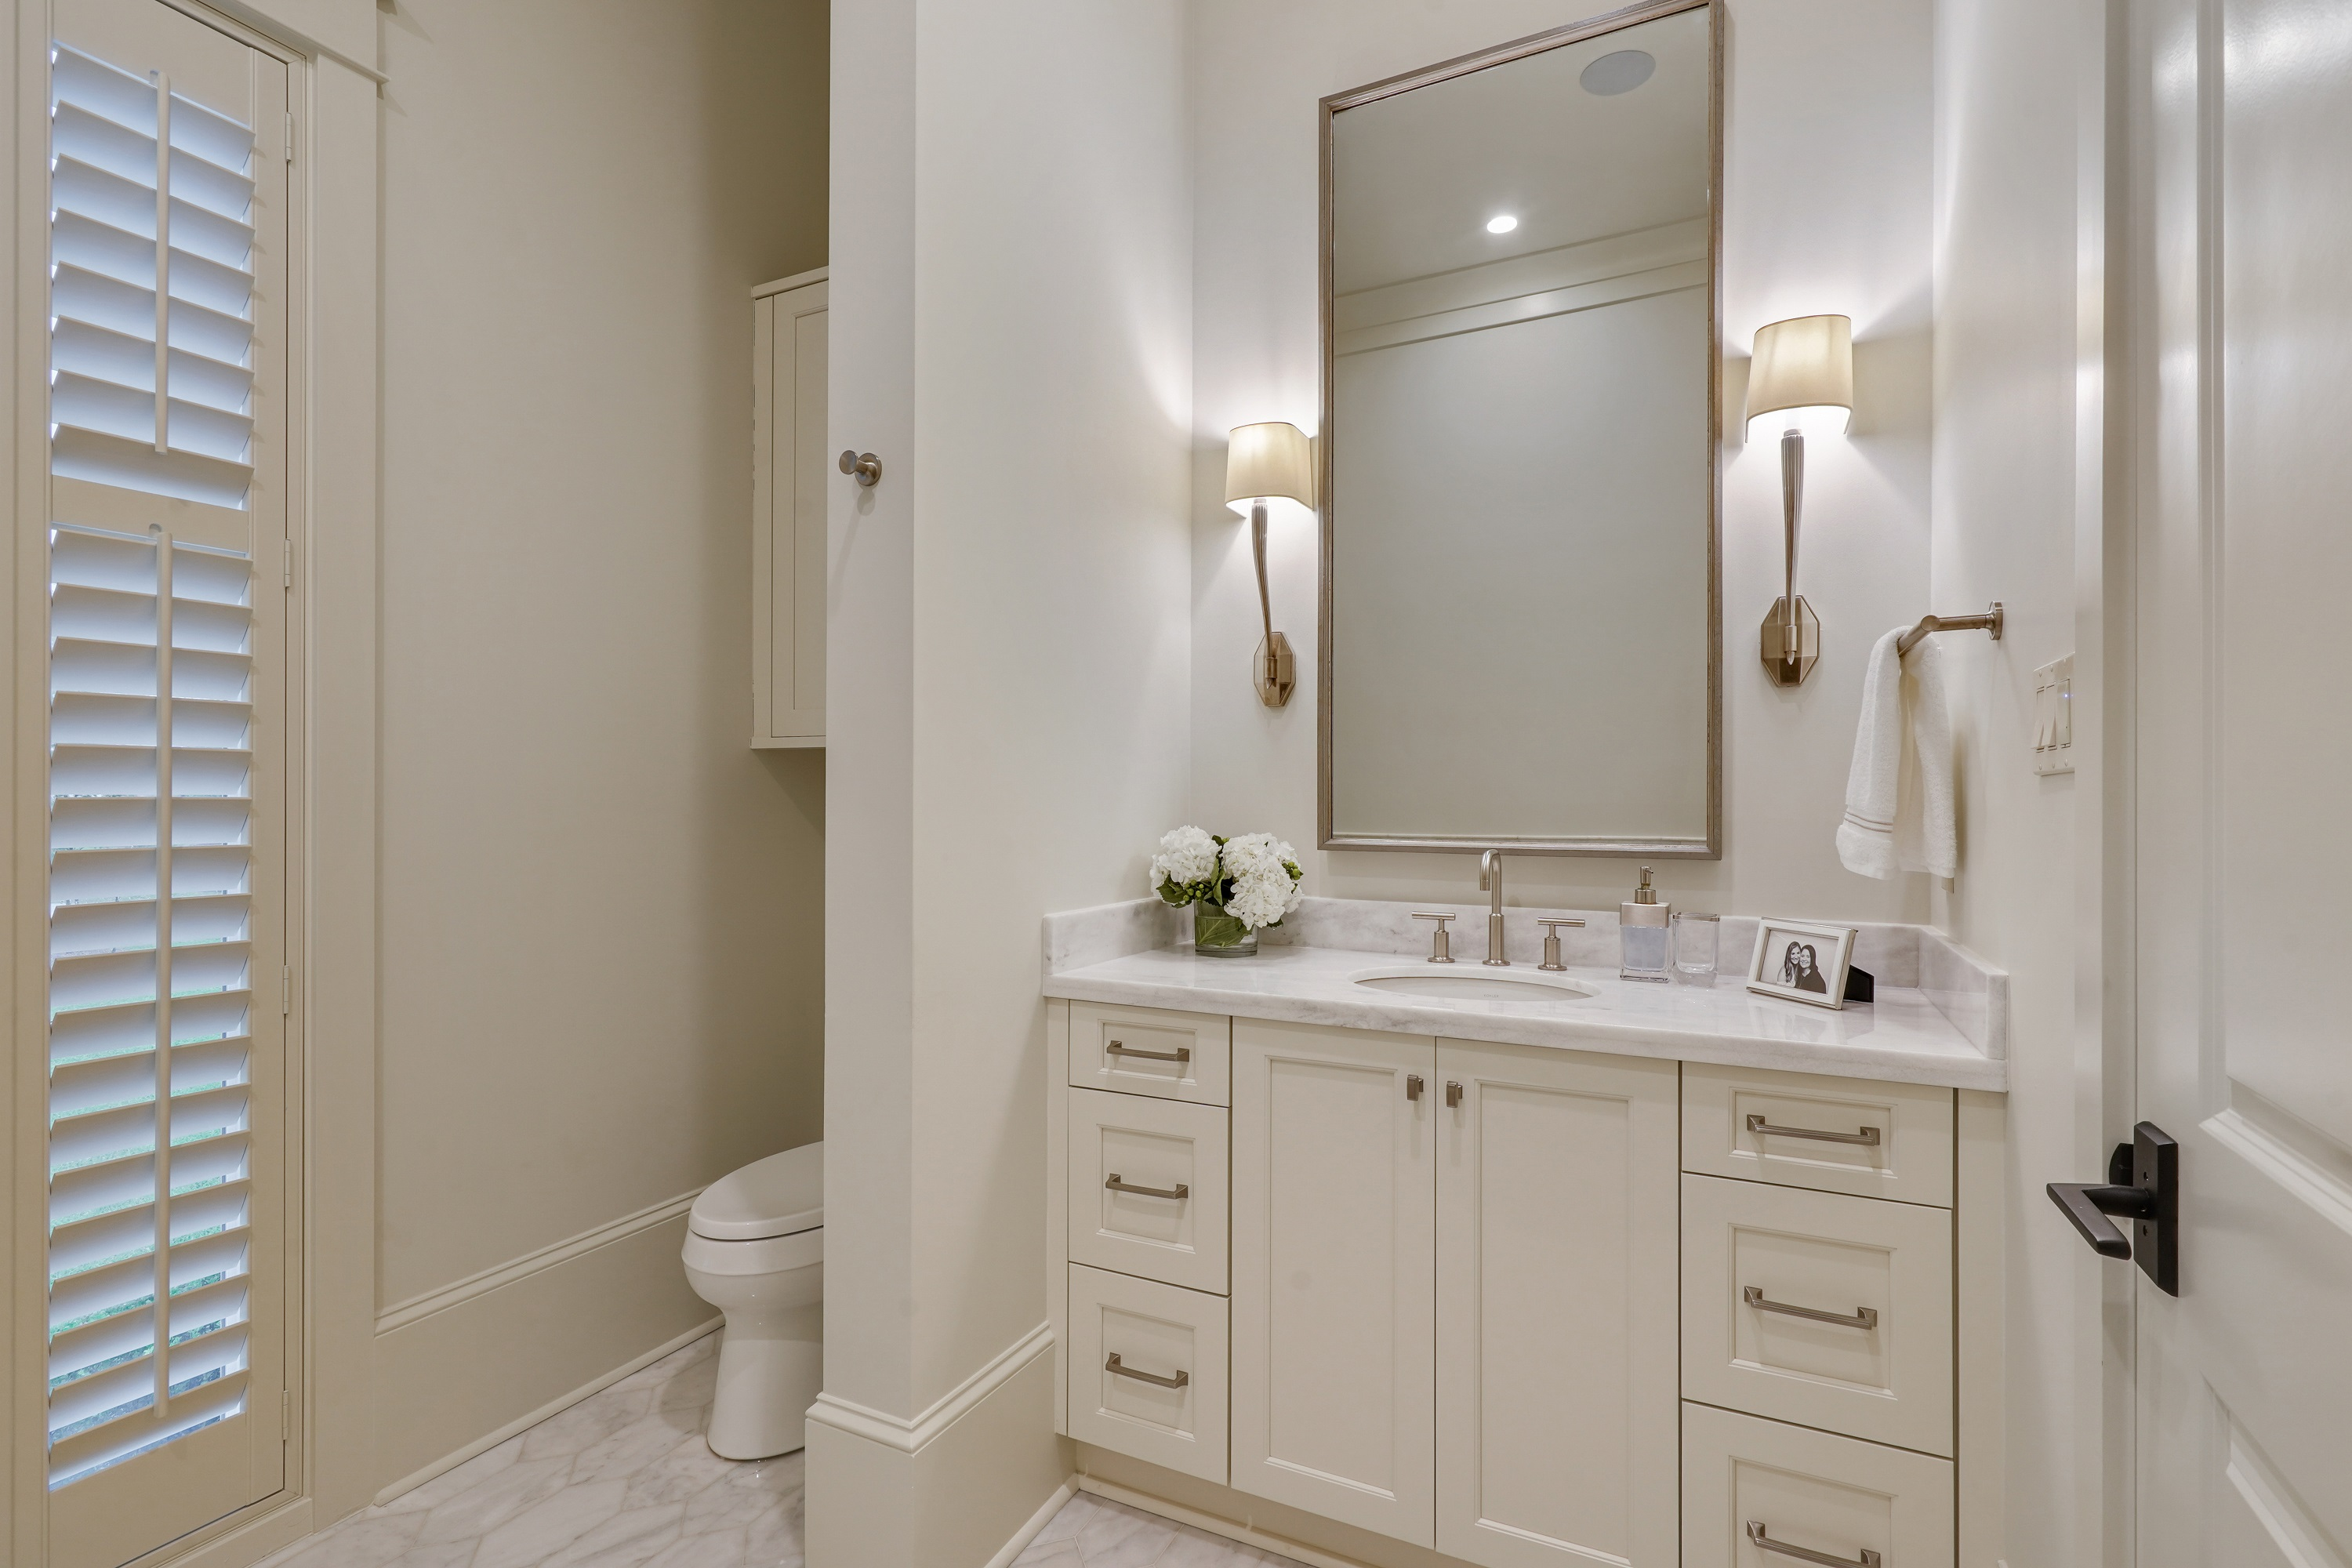 White vanity cabinetry in Covington Traditional-style bathroom